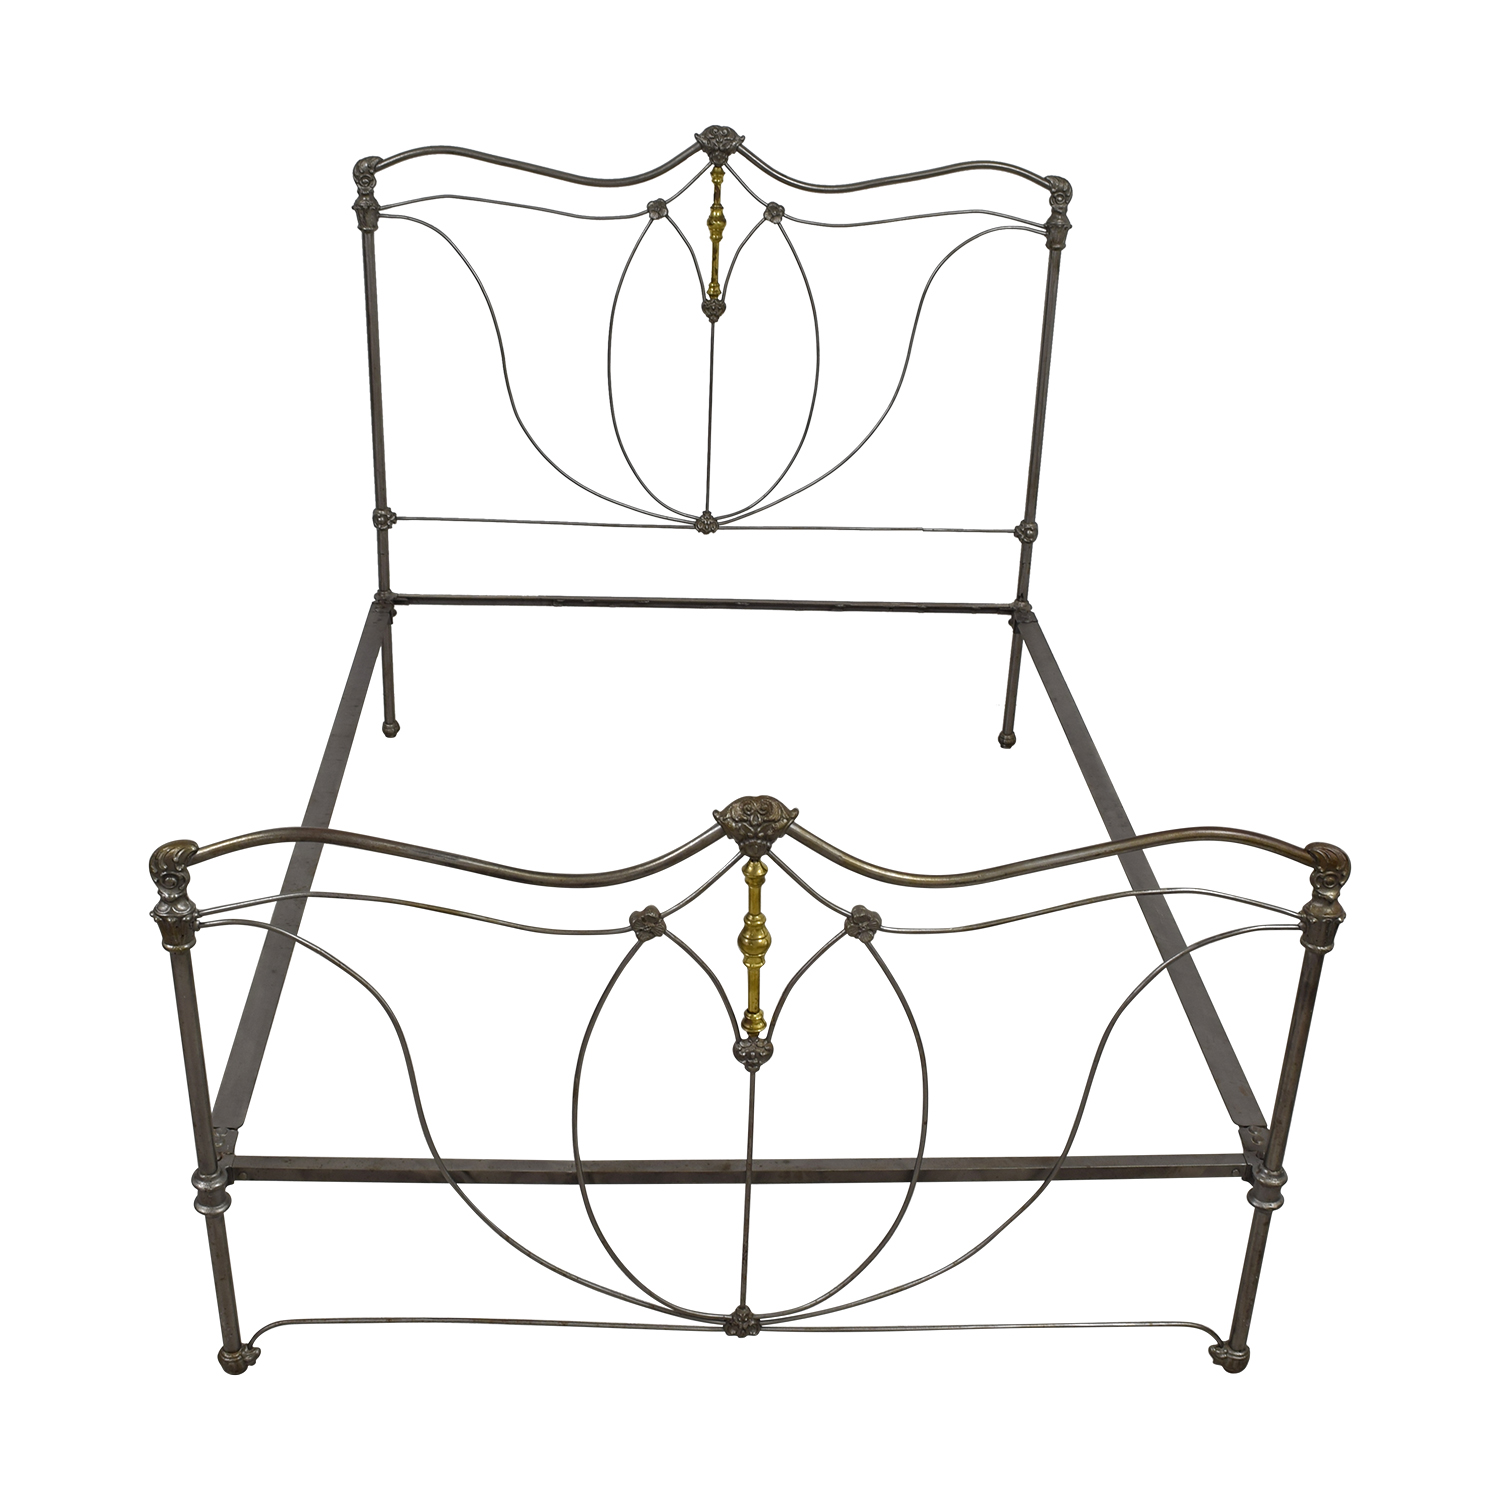 French Antique Iron and Brass Queen Bed Frame / Beds